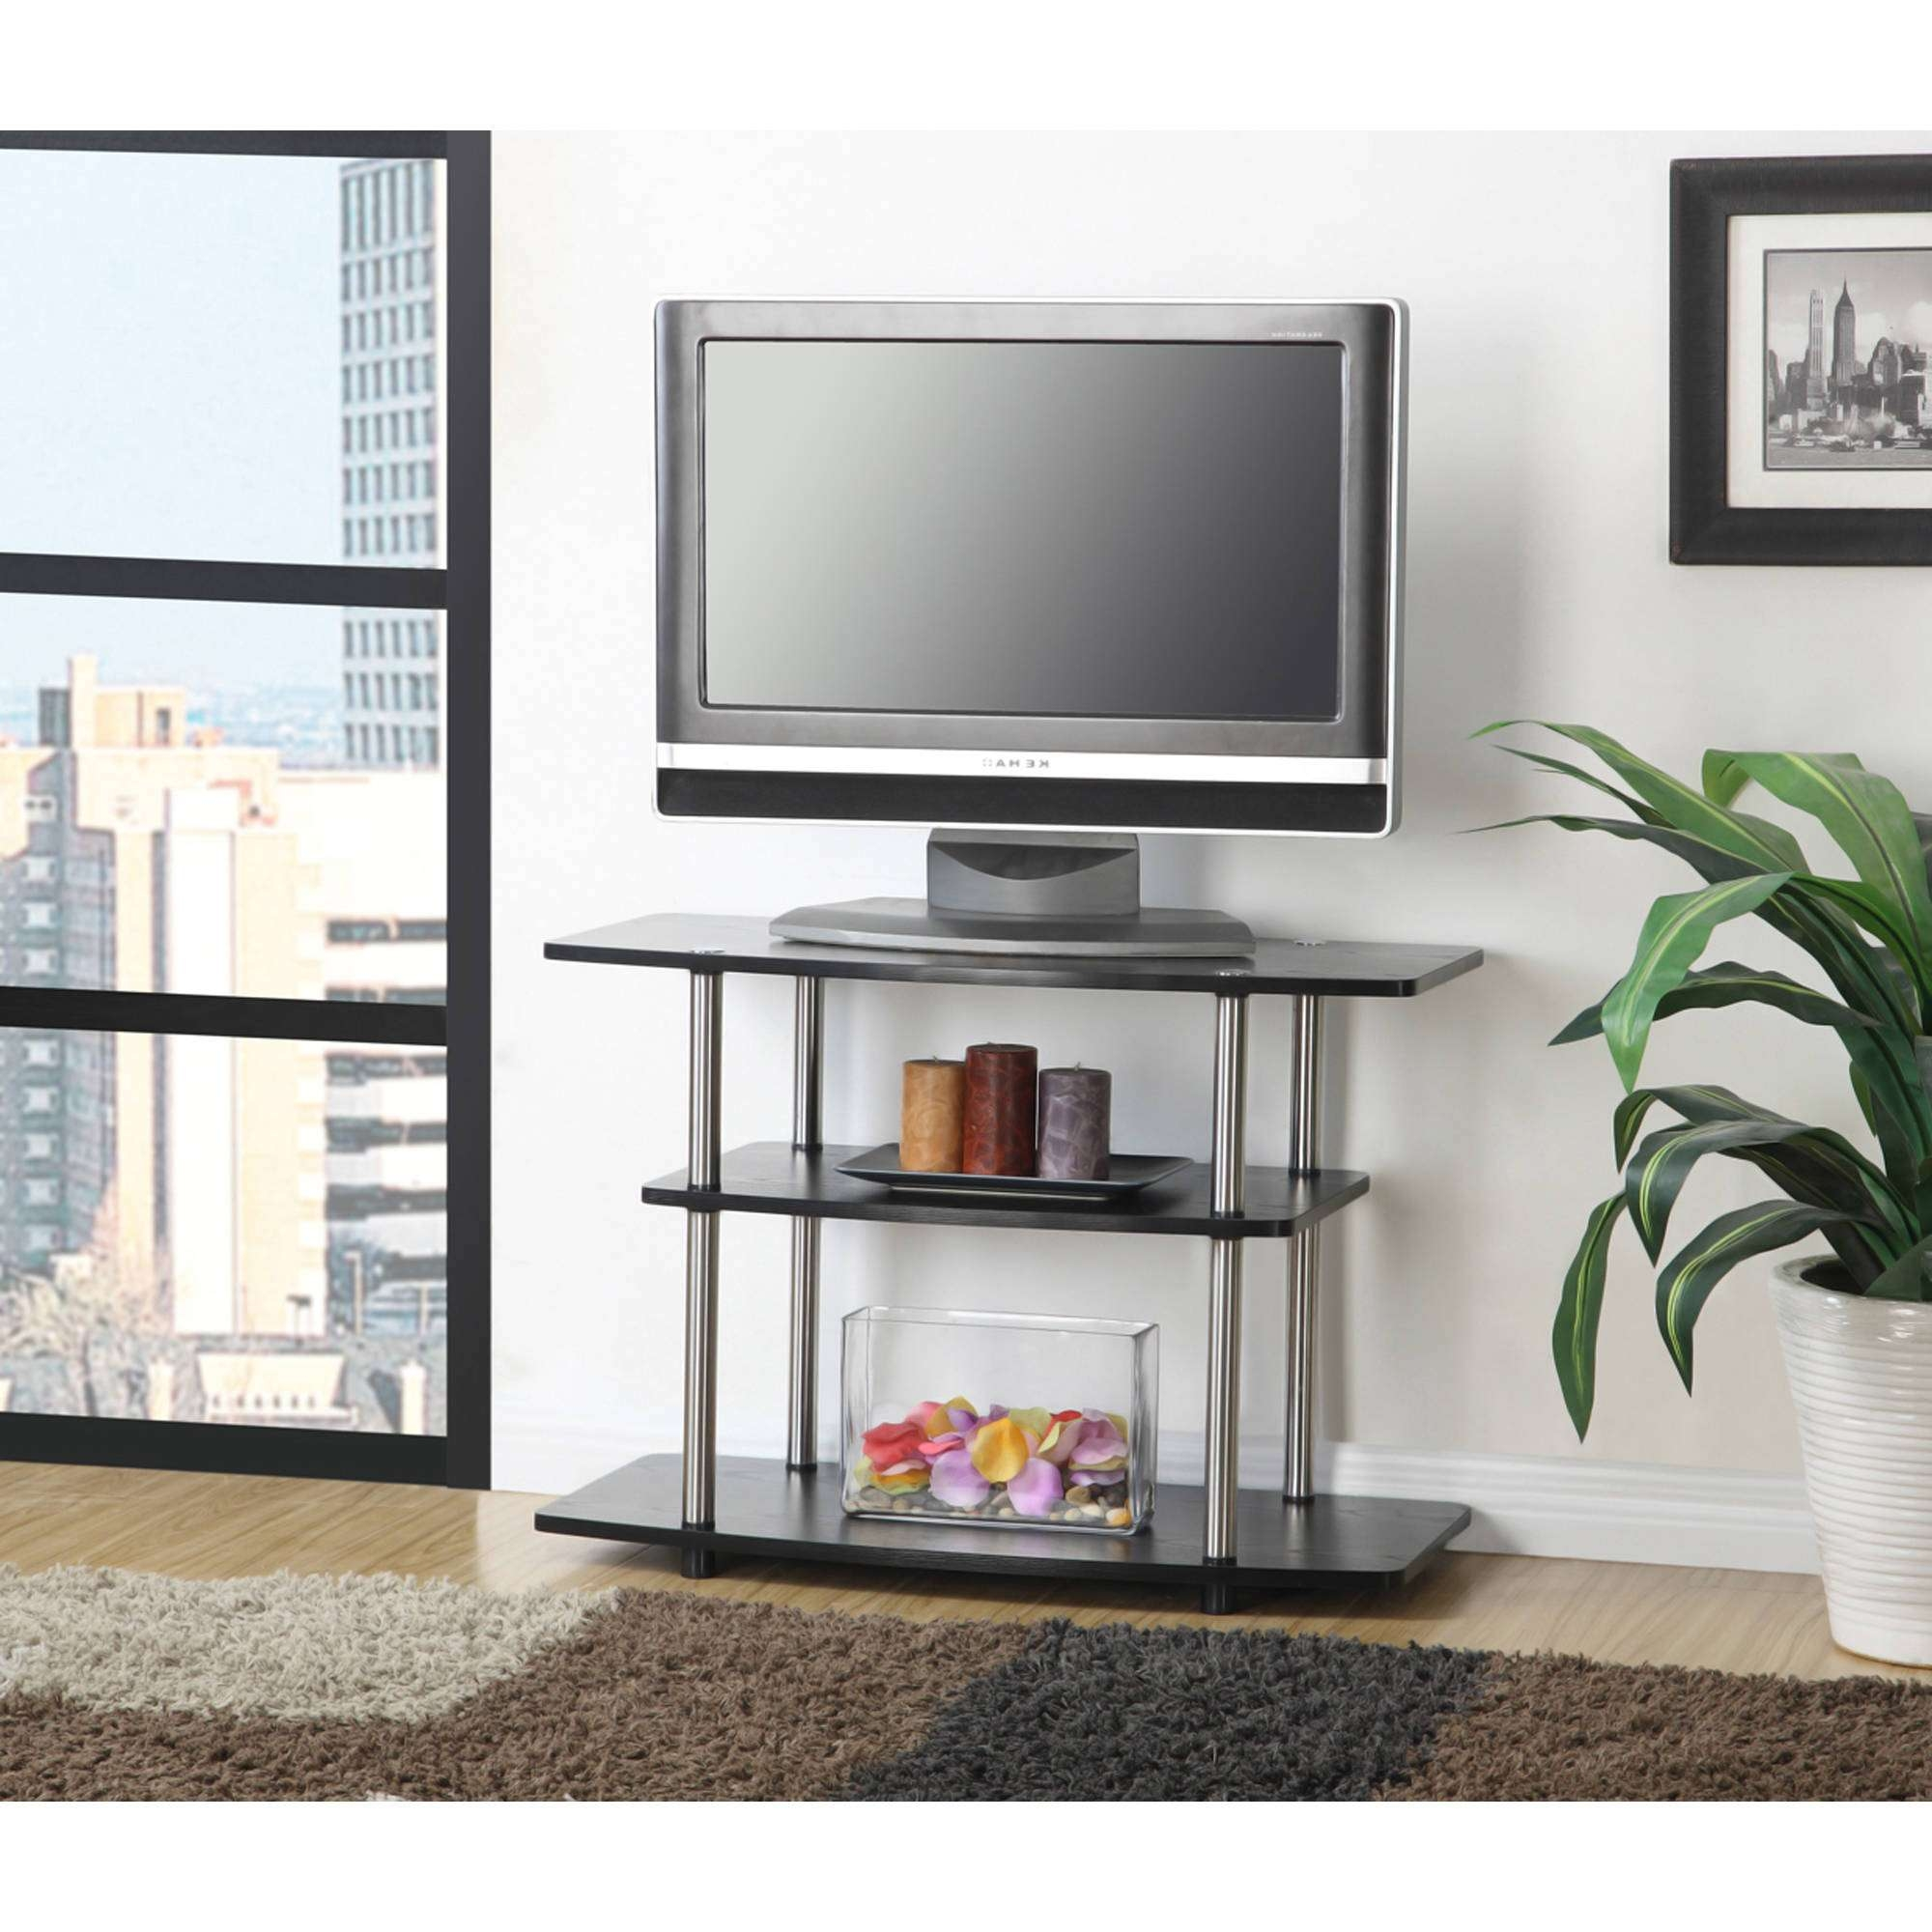 Innovative Tall Tv Stand Ikea 41 59H Along With 40 60 Flat Screens With Regard To Tall Black Tv Cabinets (View 7 of 20)